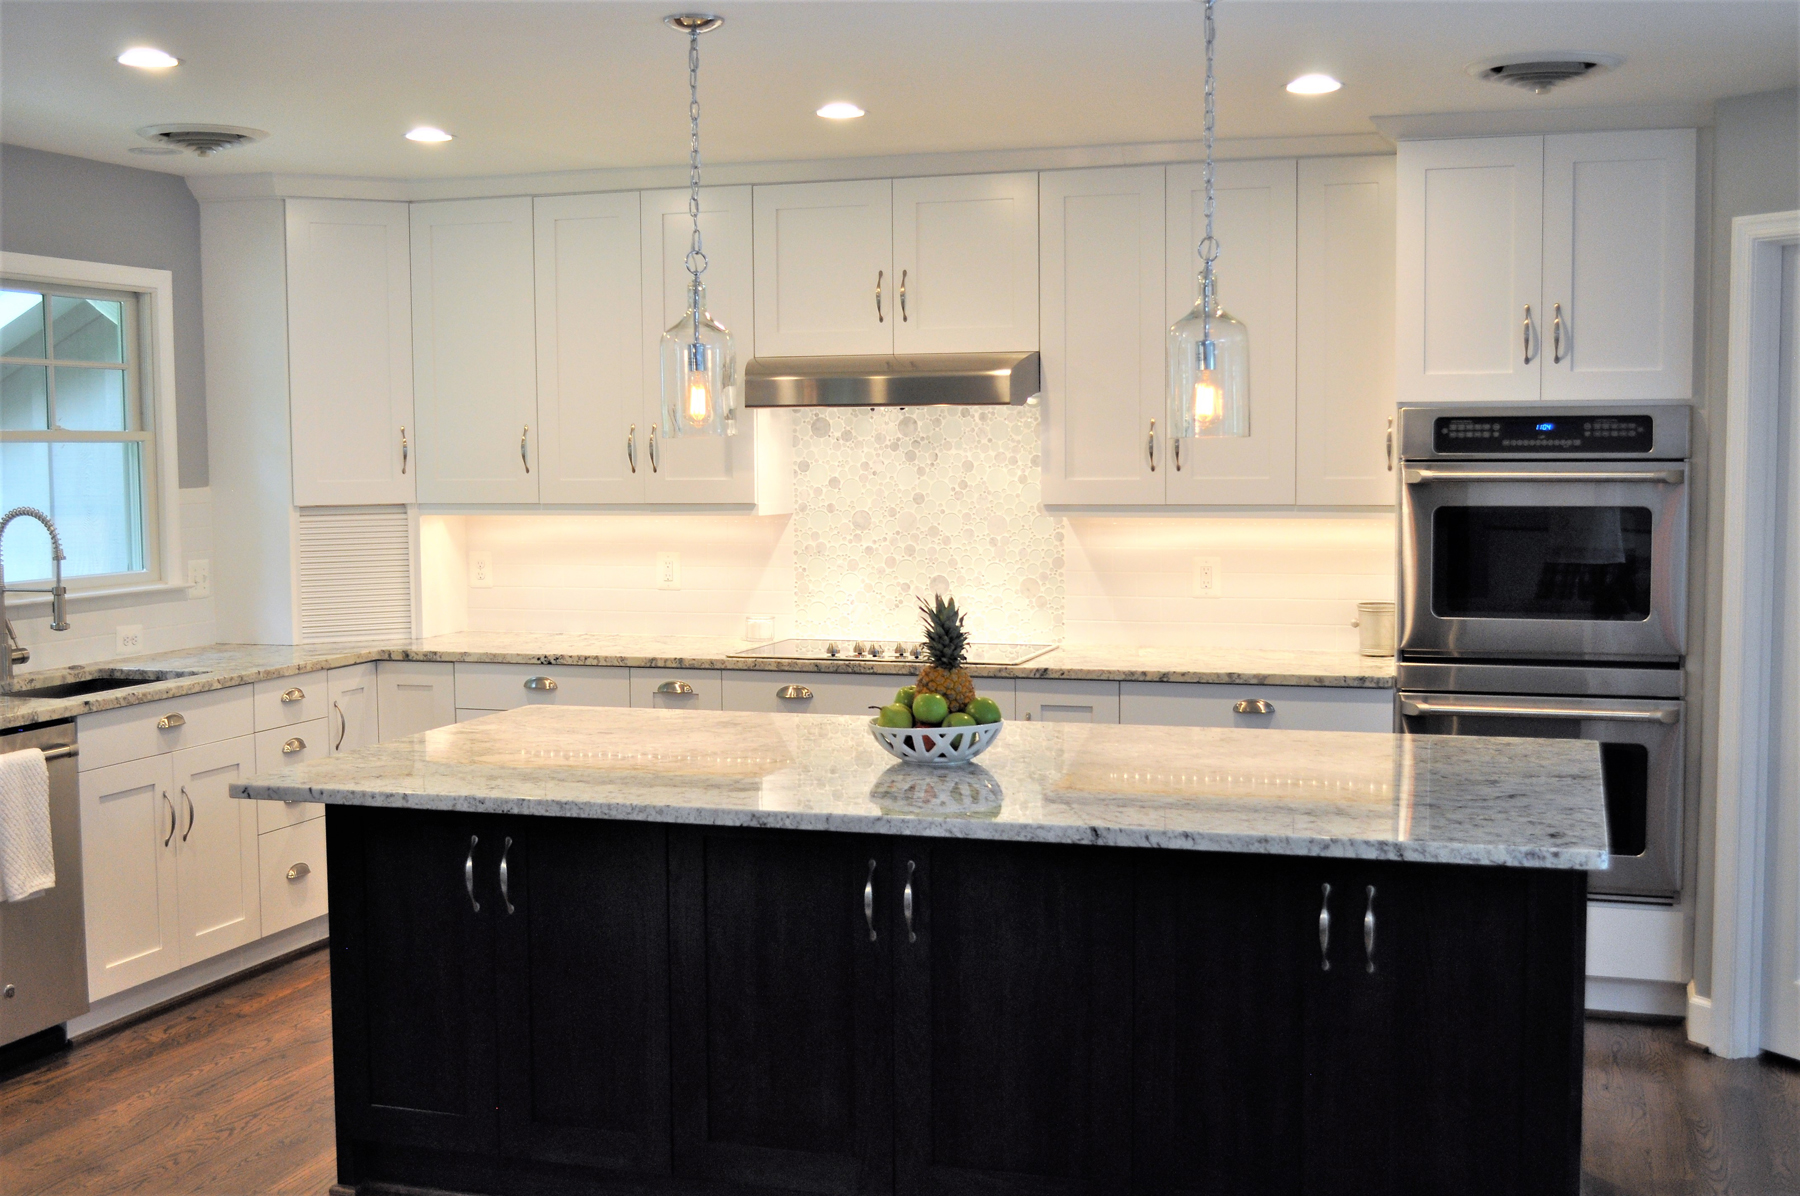 Full Kitchen Remodel with White Cabinets and Black Island in Montgomery County, MD